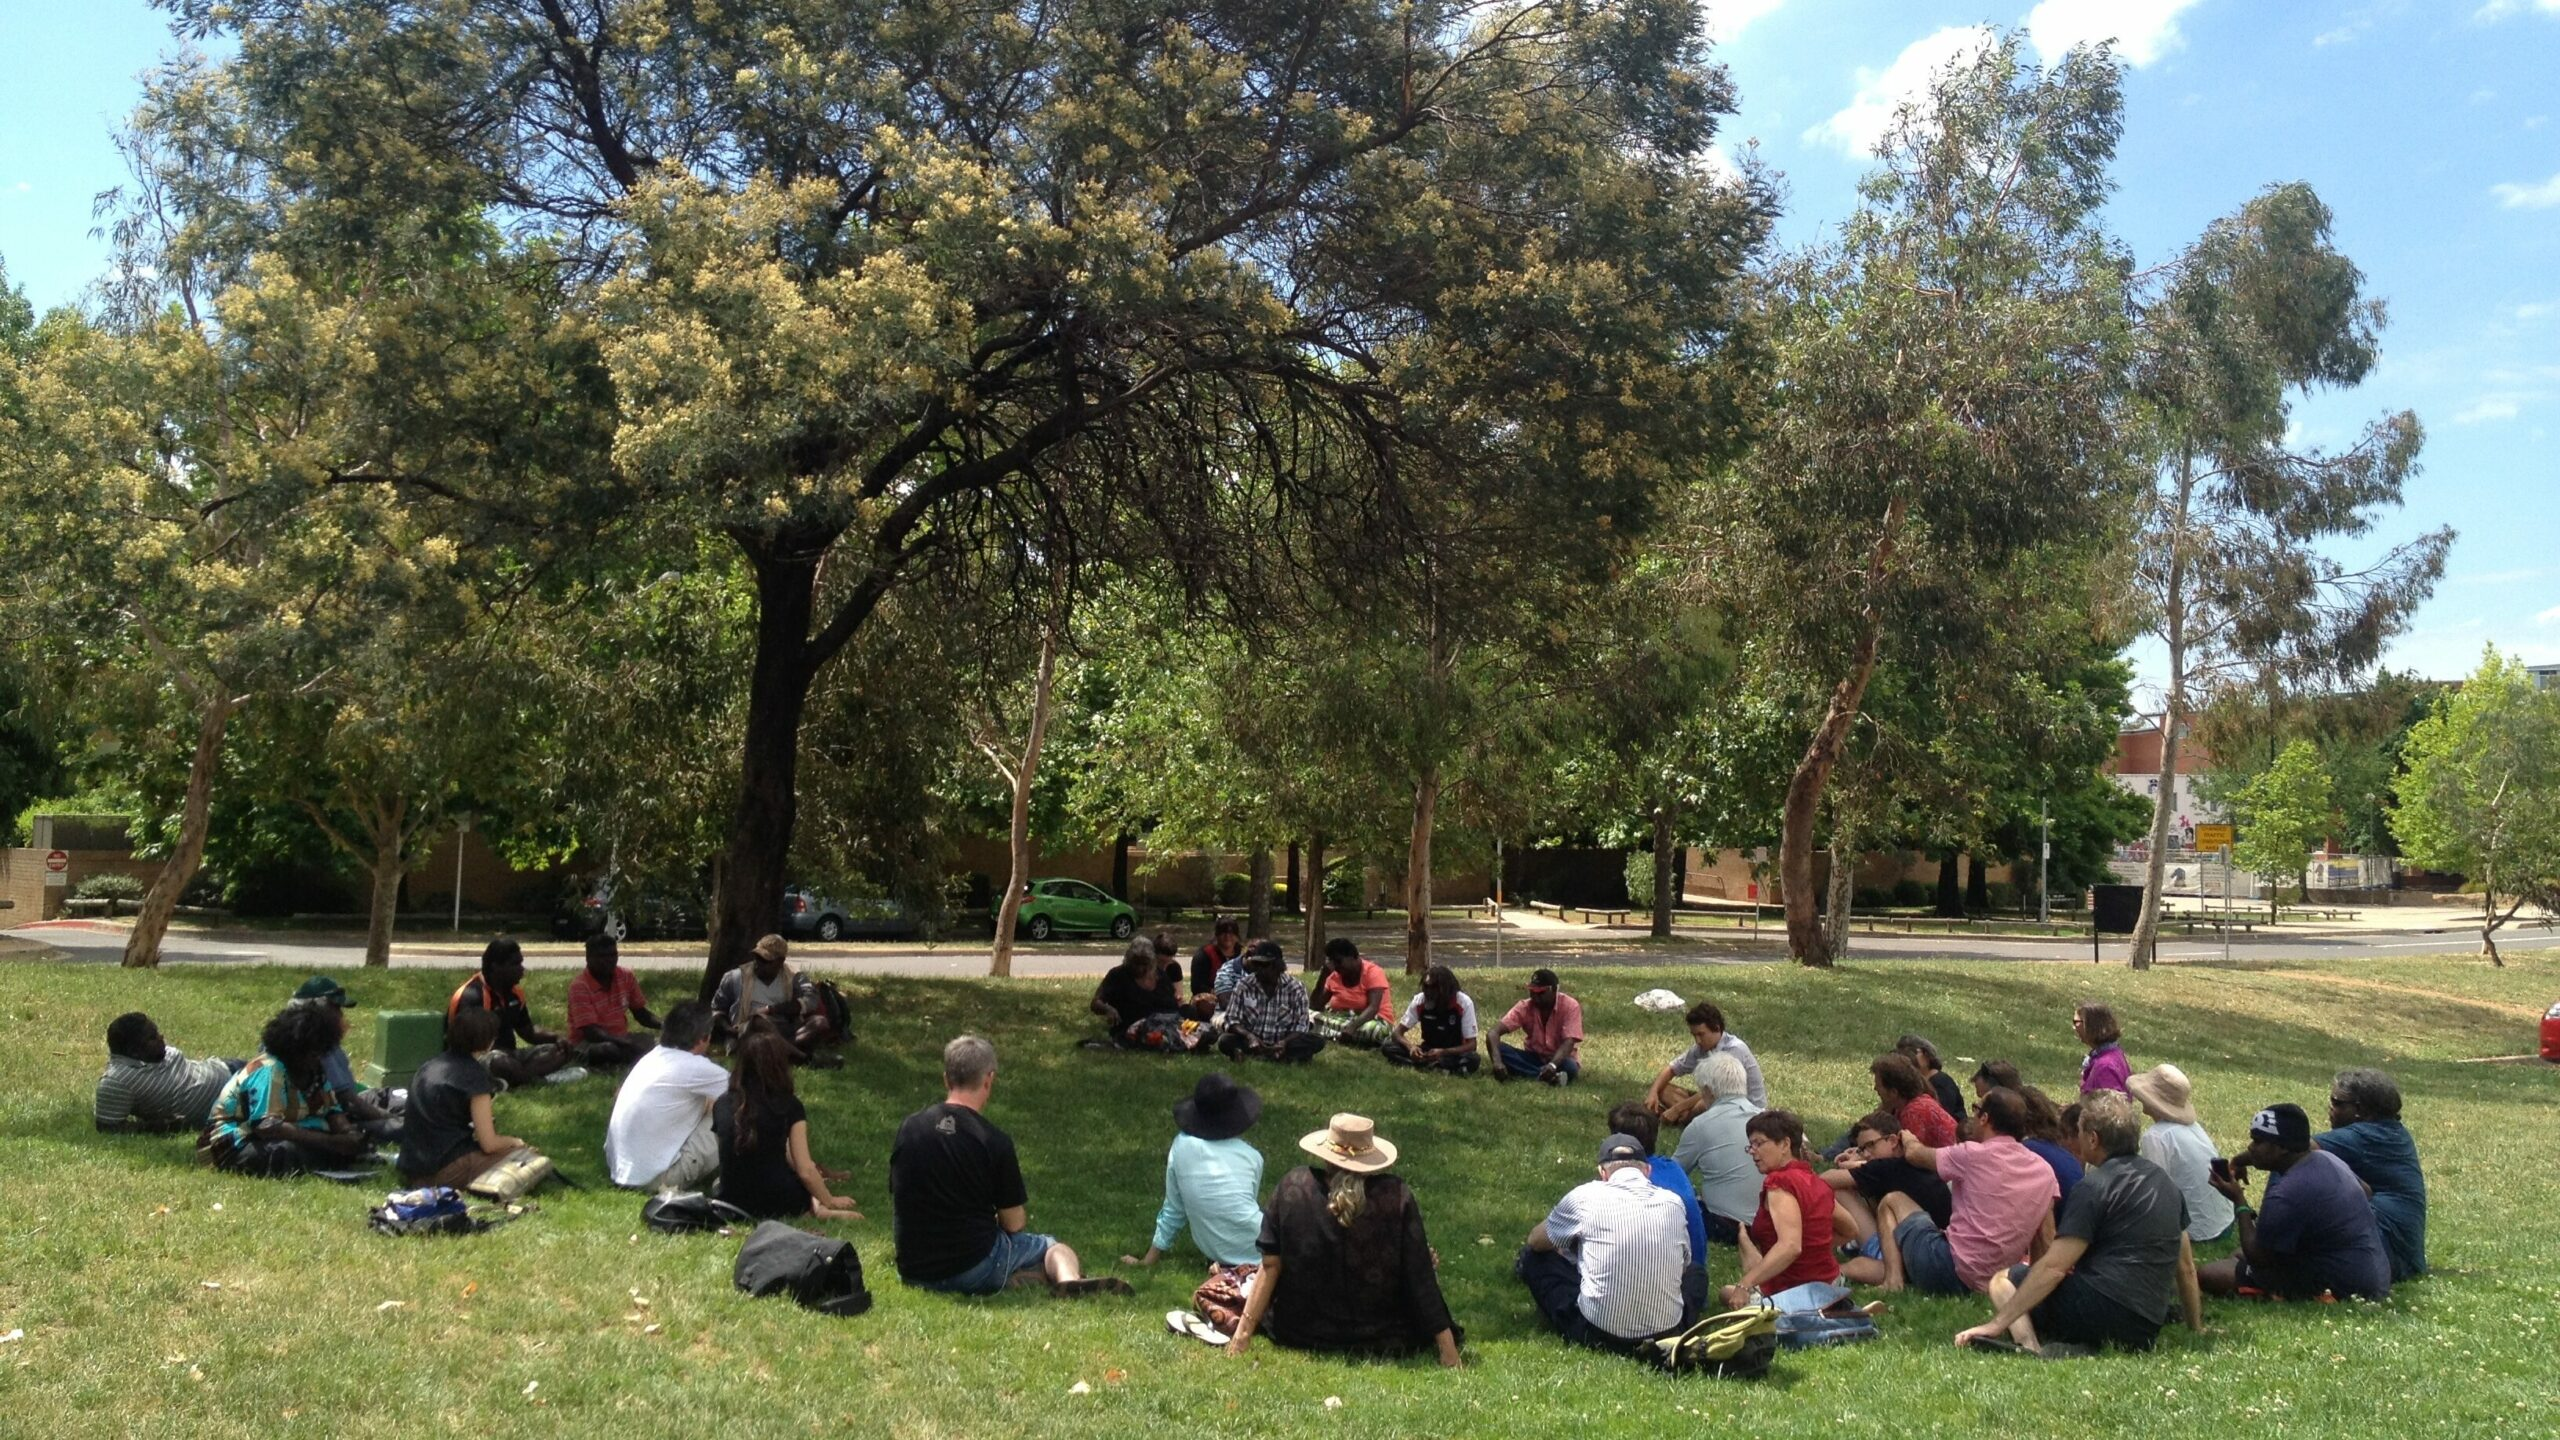 Indigenous Thinktank meeting taking place outdoors in Canberra